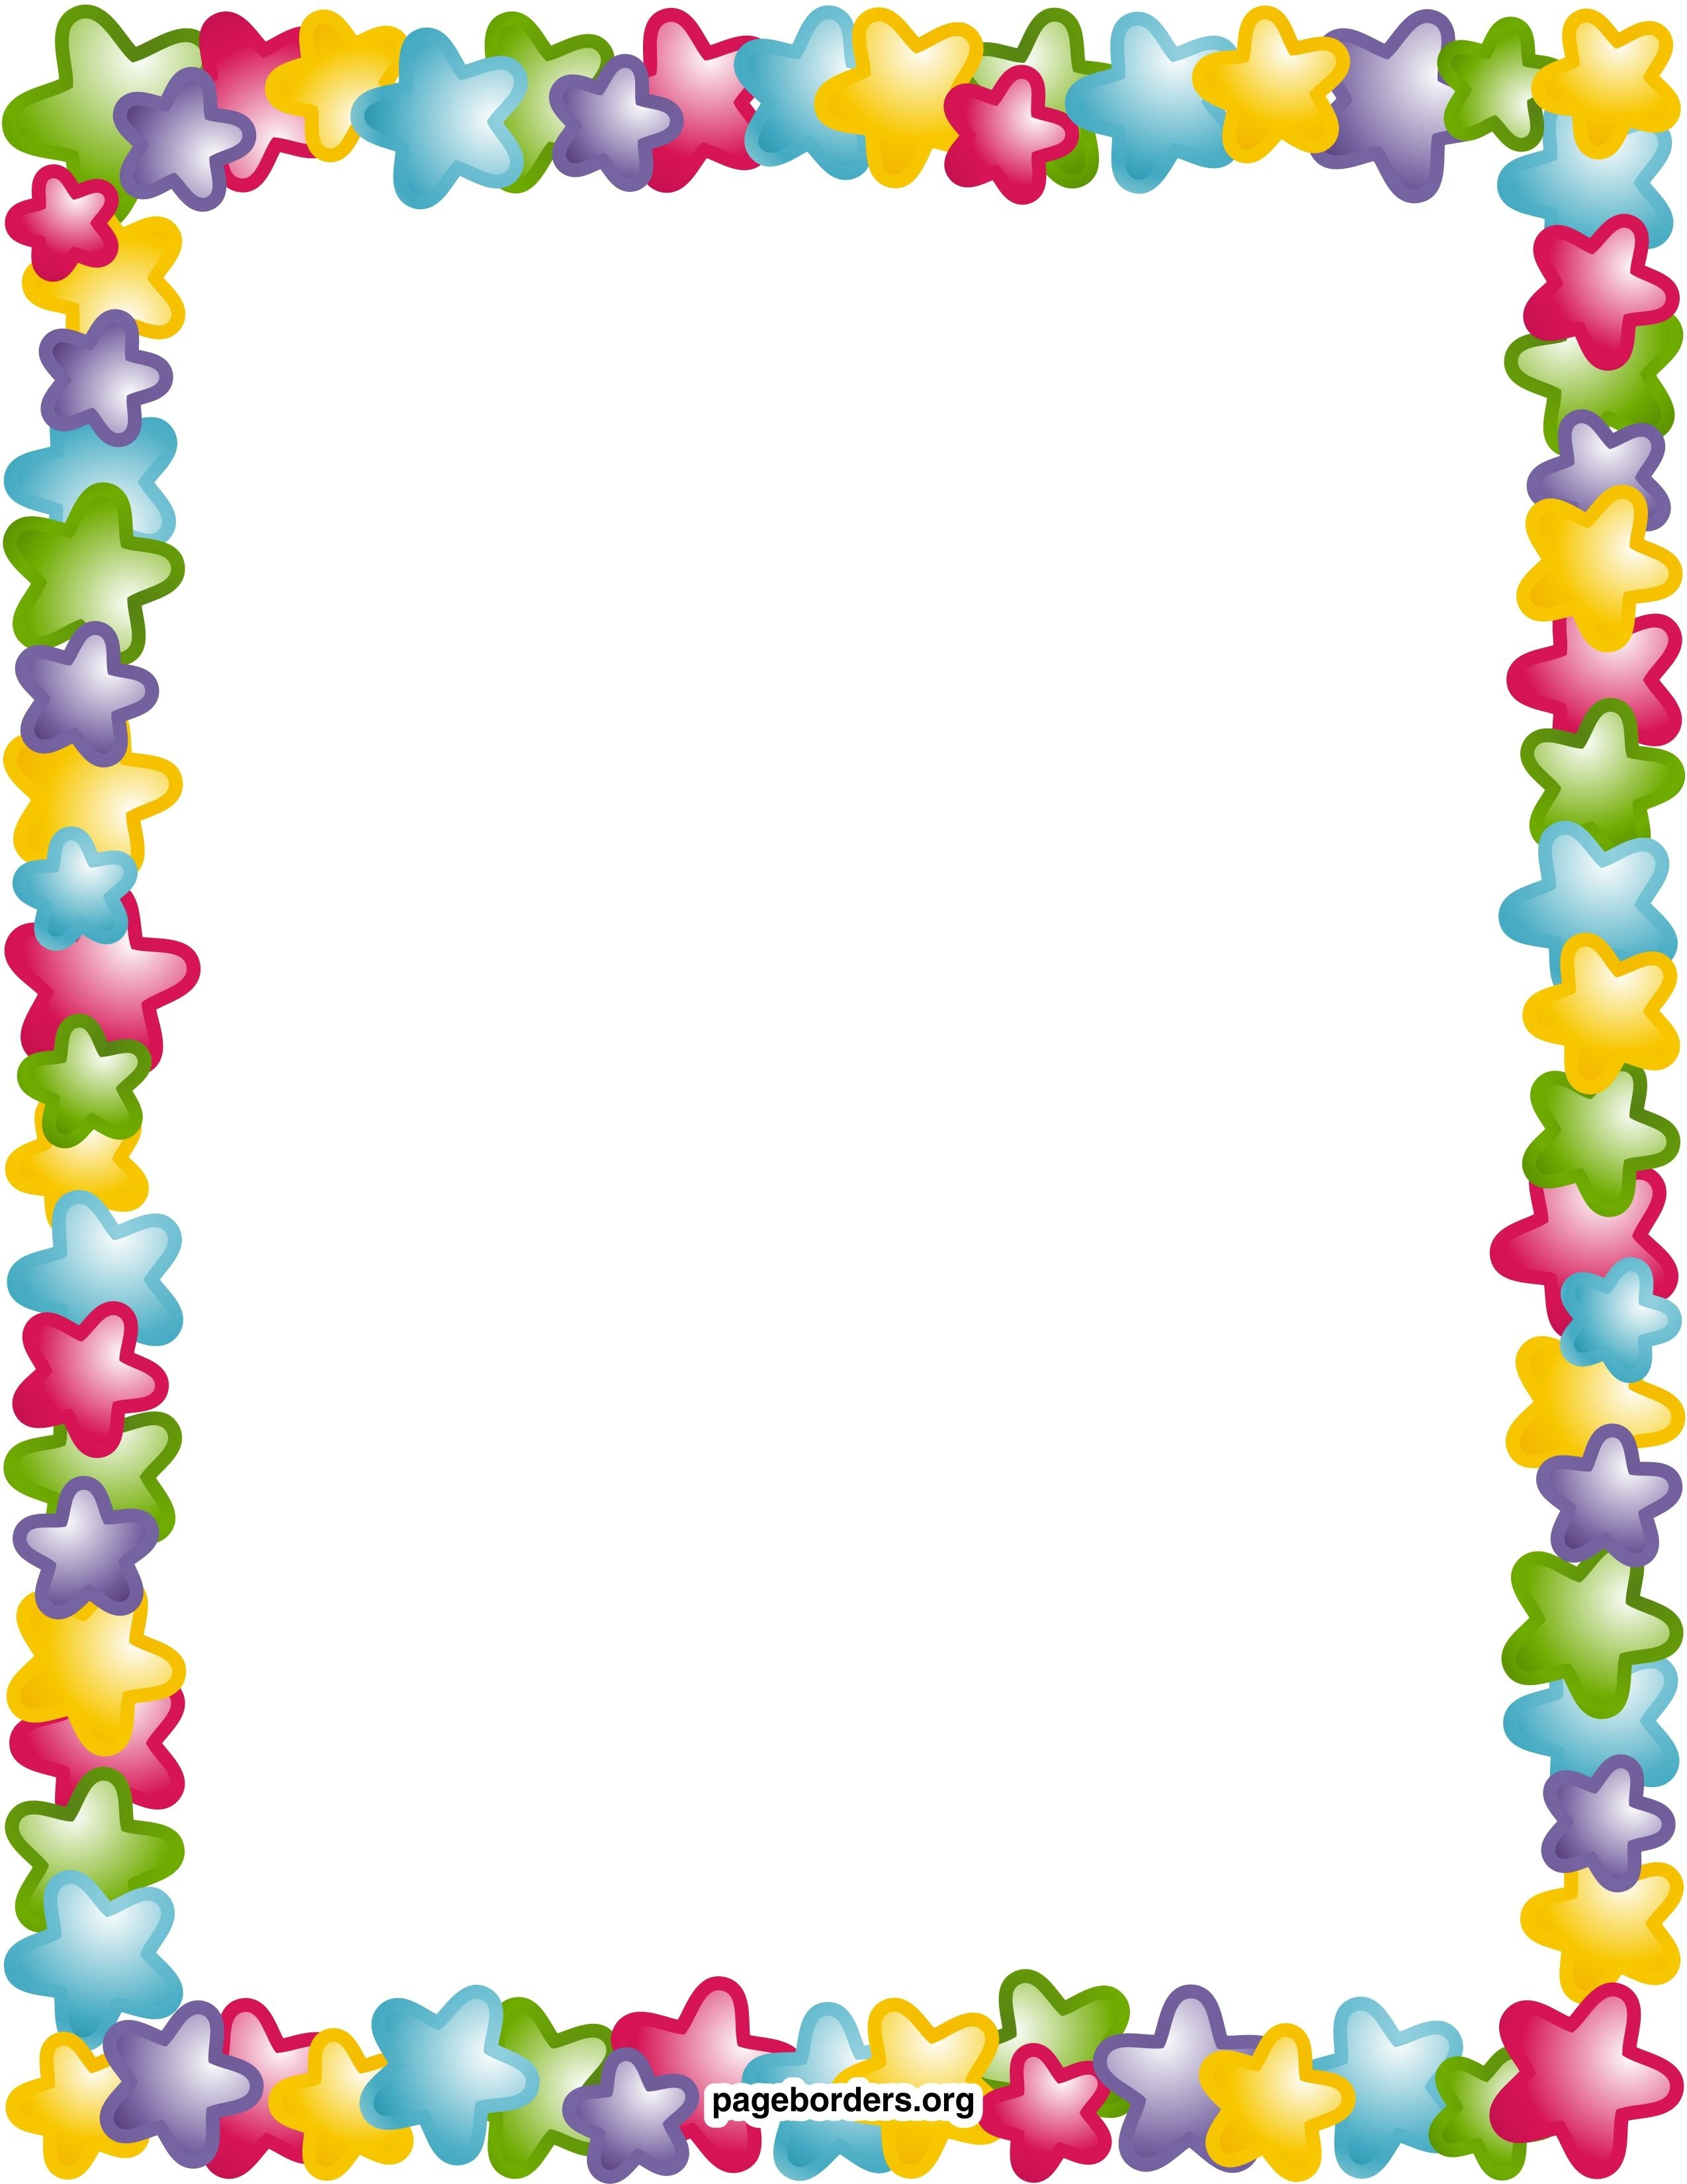 Remarkable Decoration Free Printable Borders And Frames Clip Art - Free Printable Borders For Scrapbooking